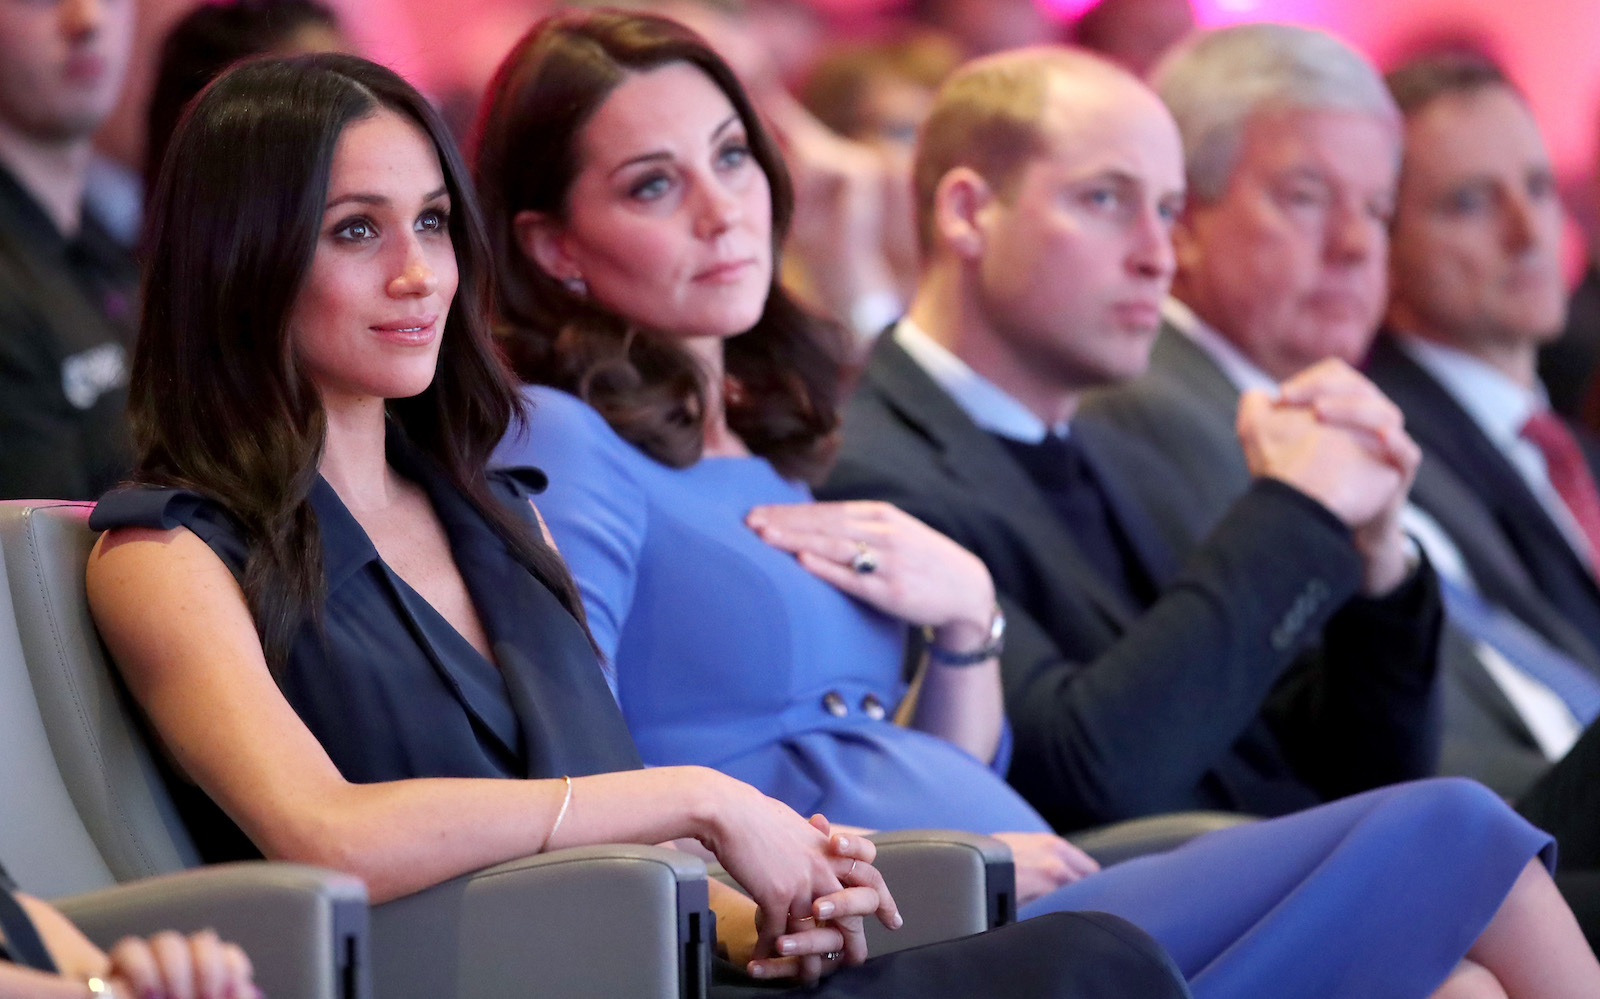 Meghan Markle, Kate Middleton, and Prince William